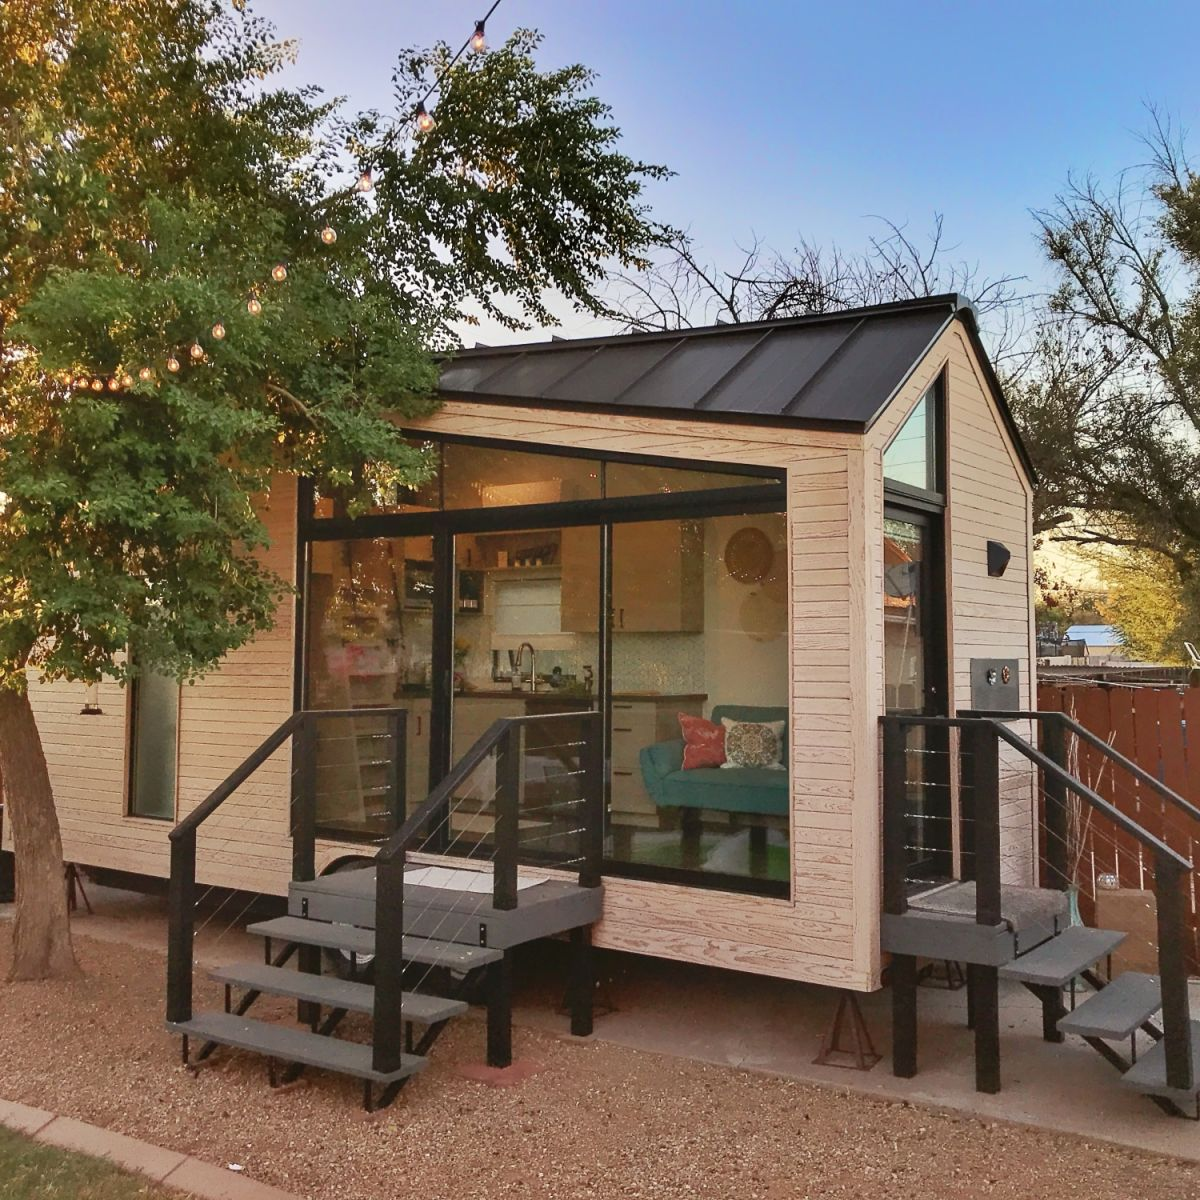 Luxury Modern Tiny House on Wheels - Tiny House for Sale in PHOENIX,  Arizona - Tiny House Listings